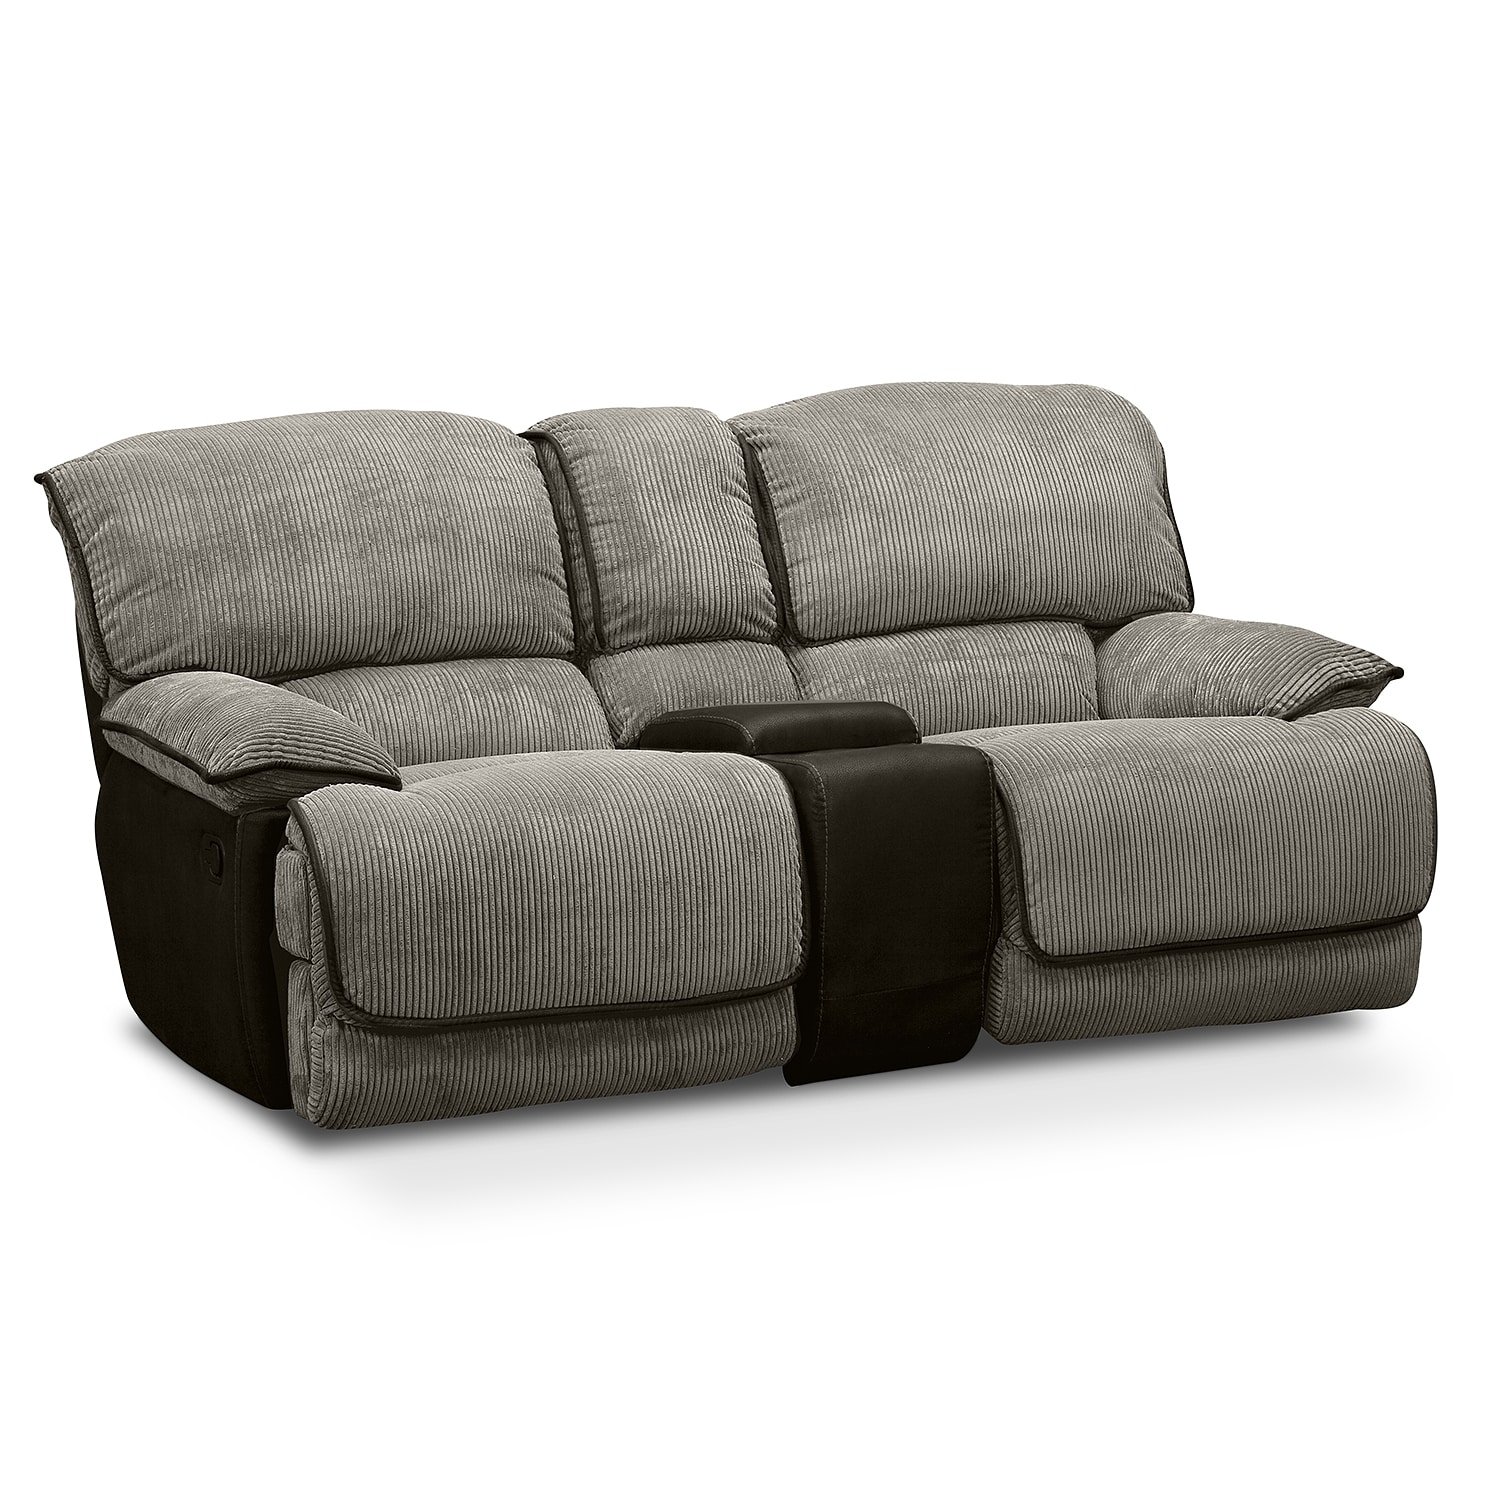 laguna gliding reclining loveseat steel value city